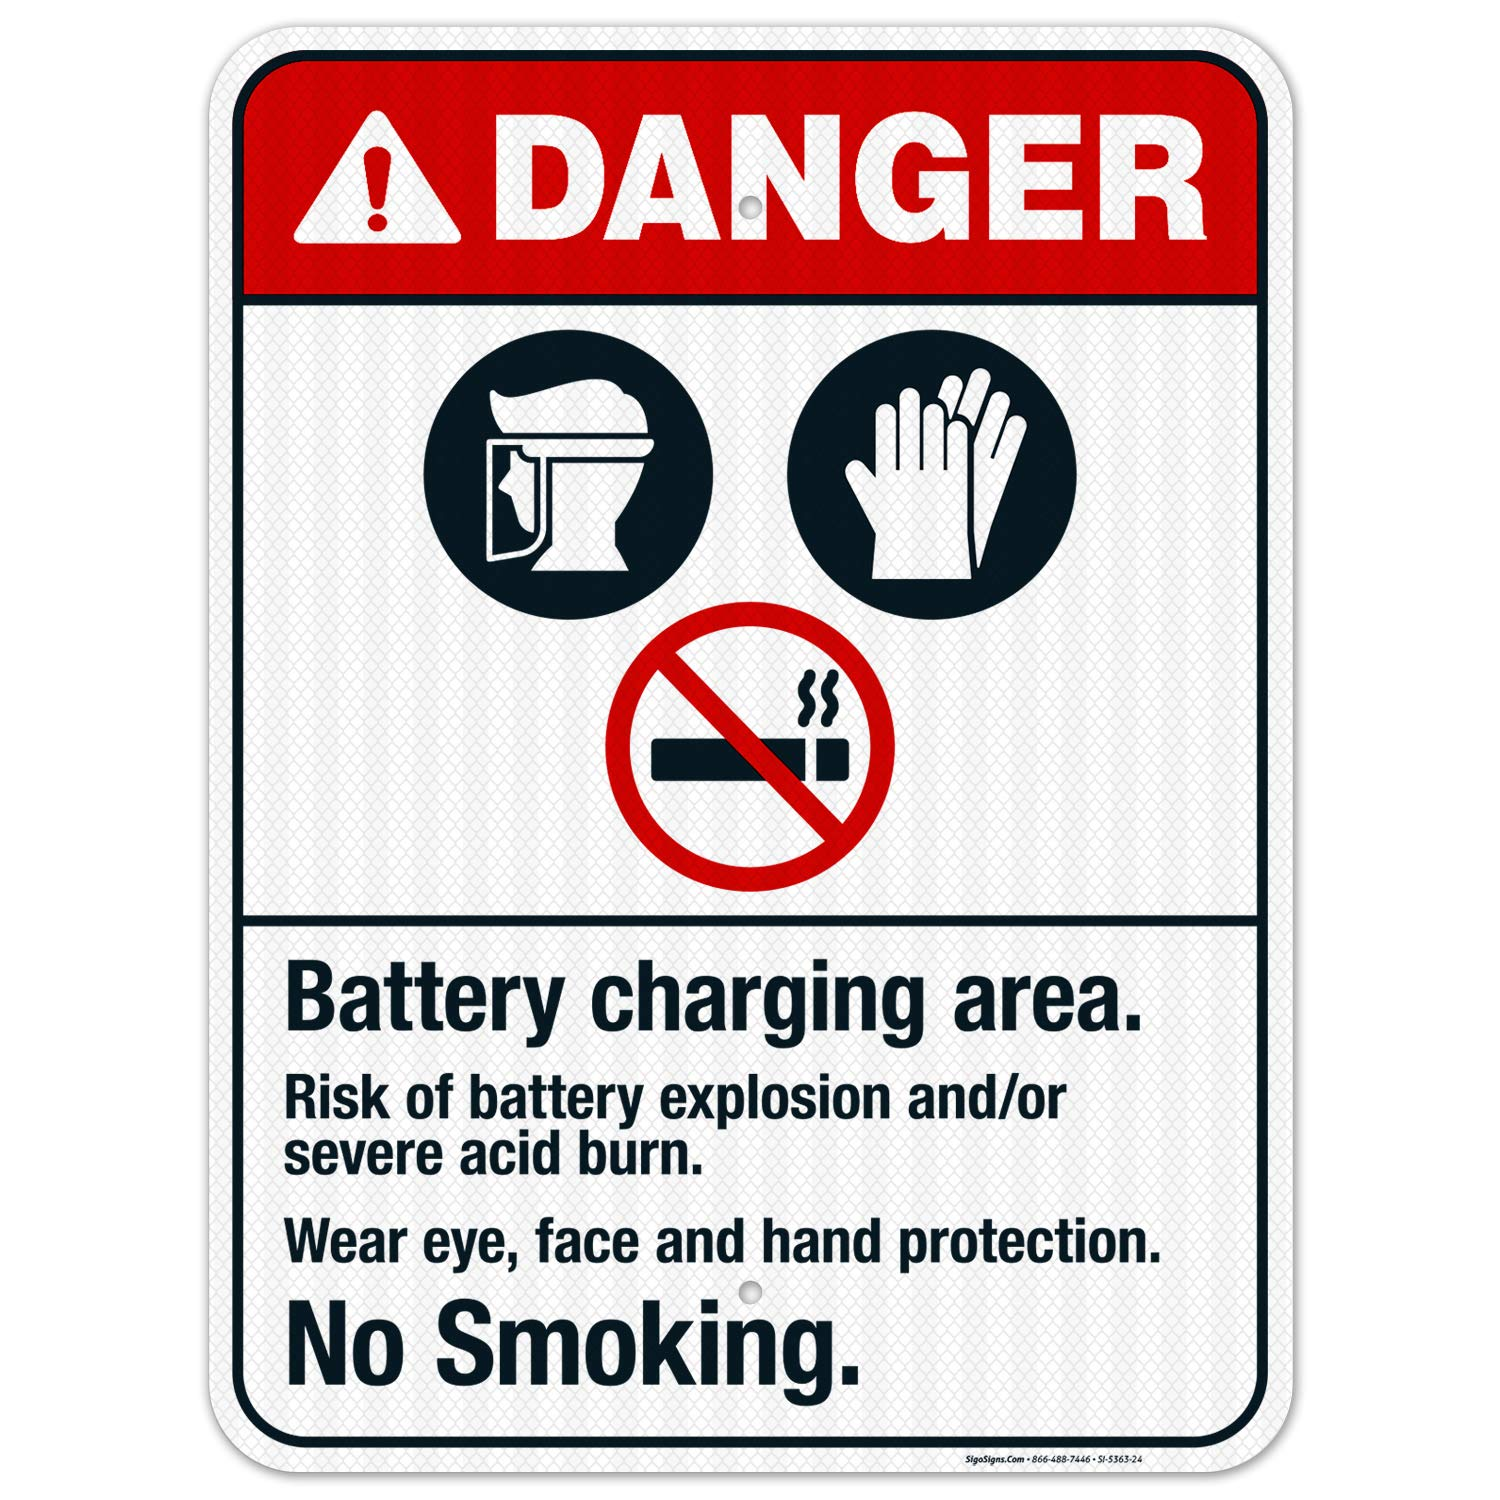 Sales results No. 1 Battery Charging Area Risk Max 57% OFF of Explosion ANSI Dange Sign